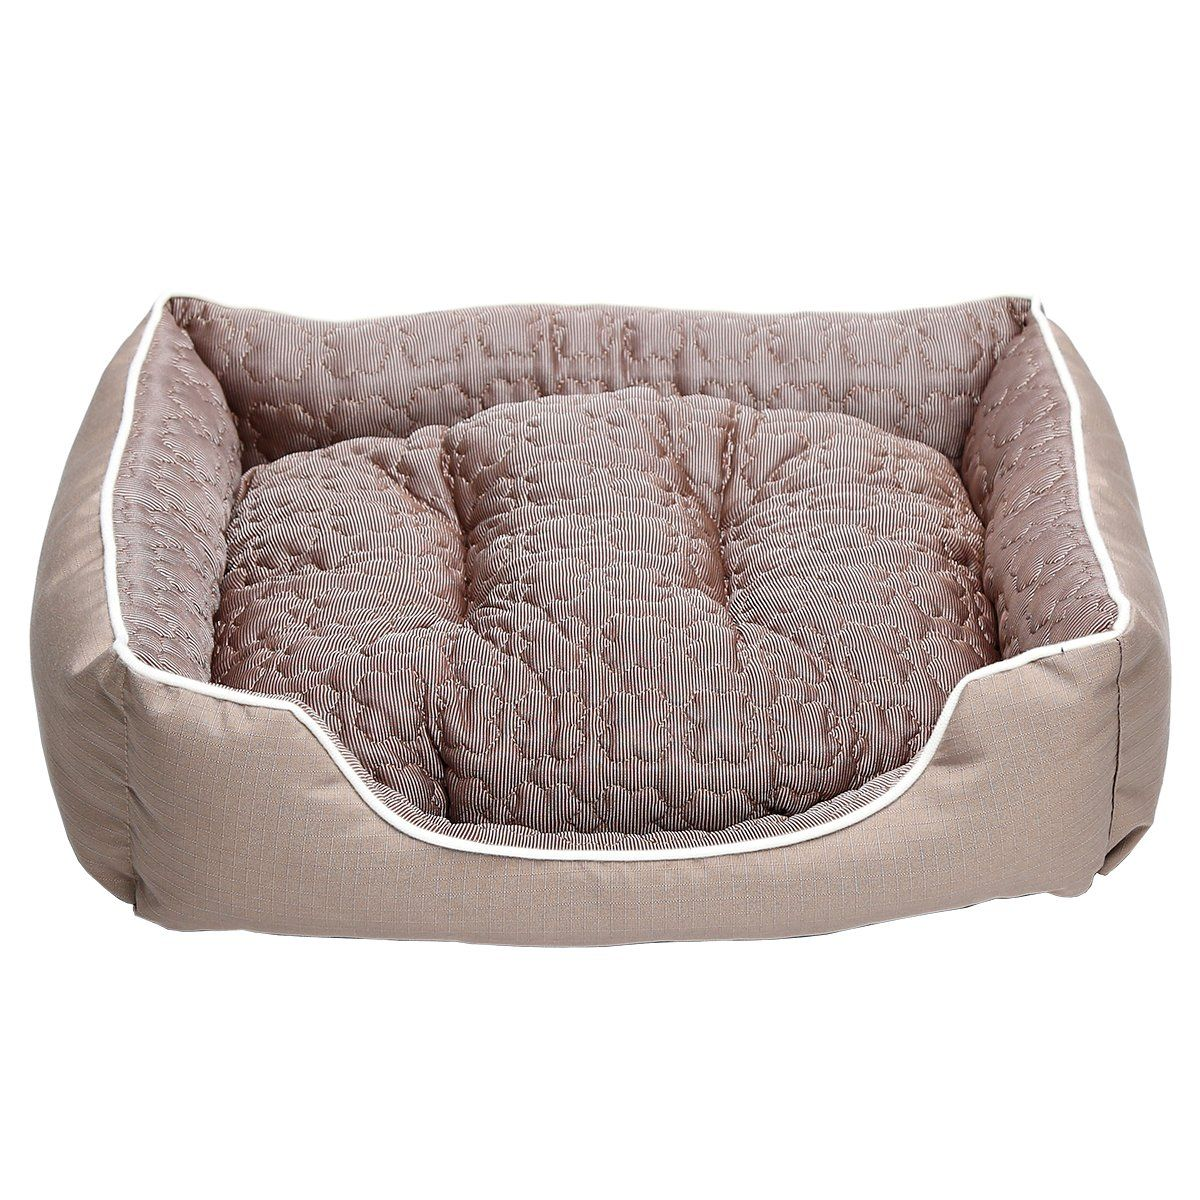 JEMA Pet Self Cooling Dog Bed Summer Comfortable Memory